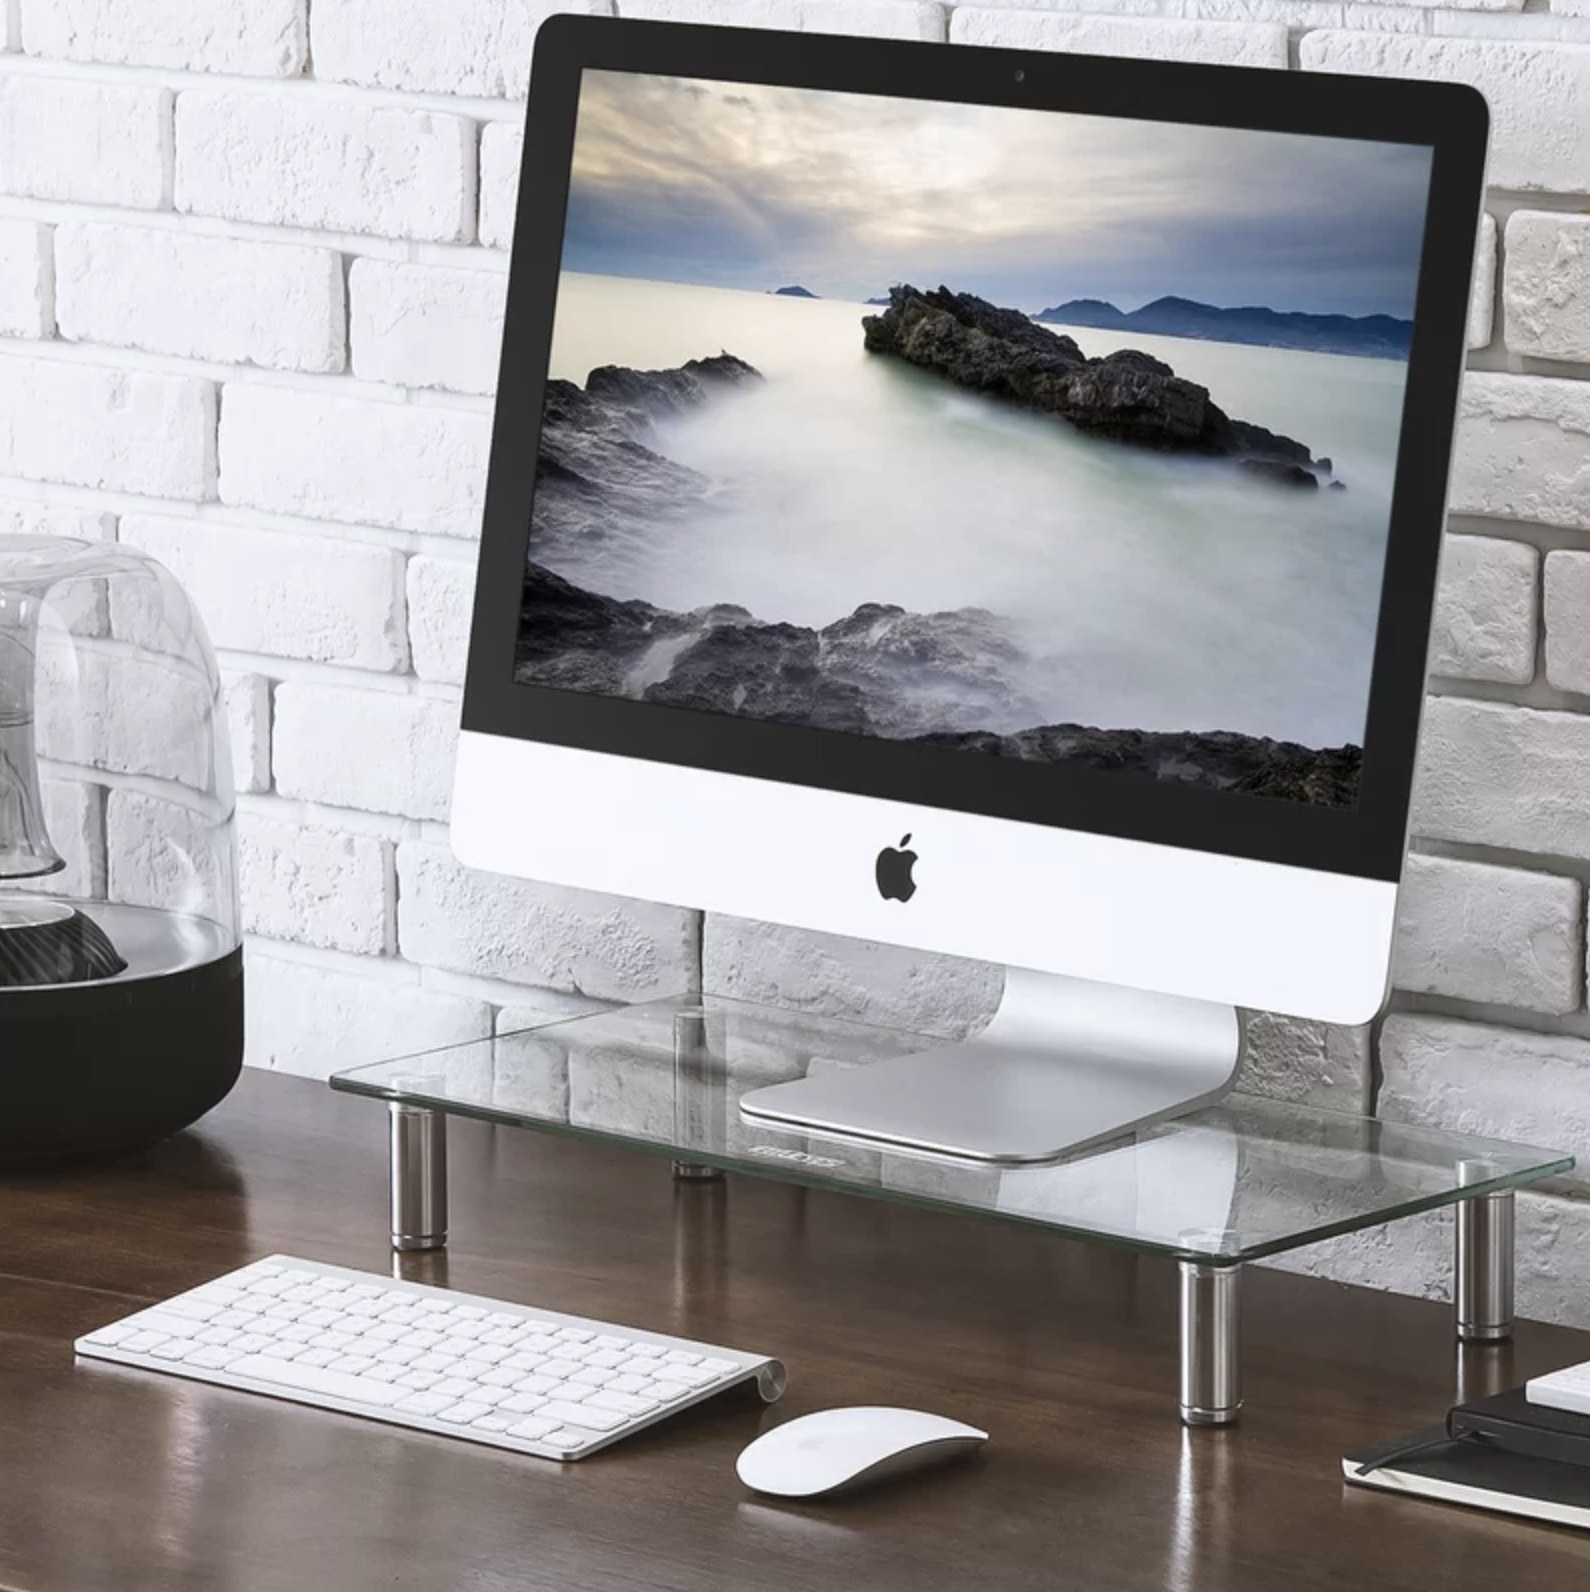 The desktop standing under an iMac